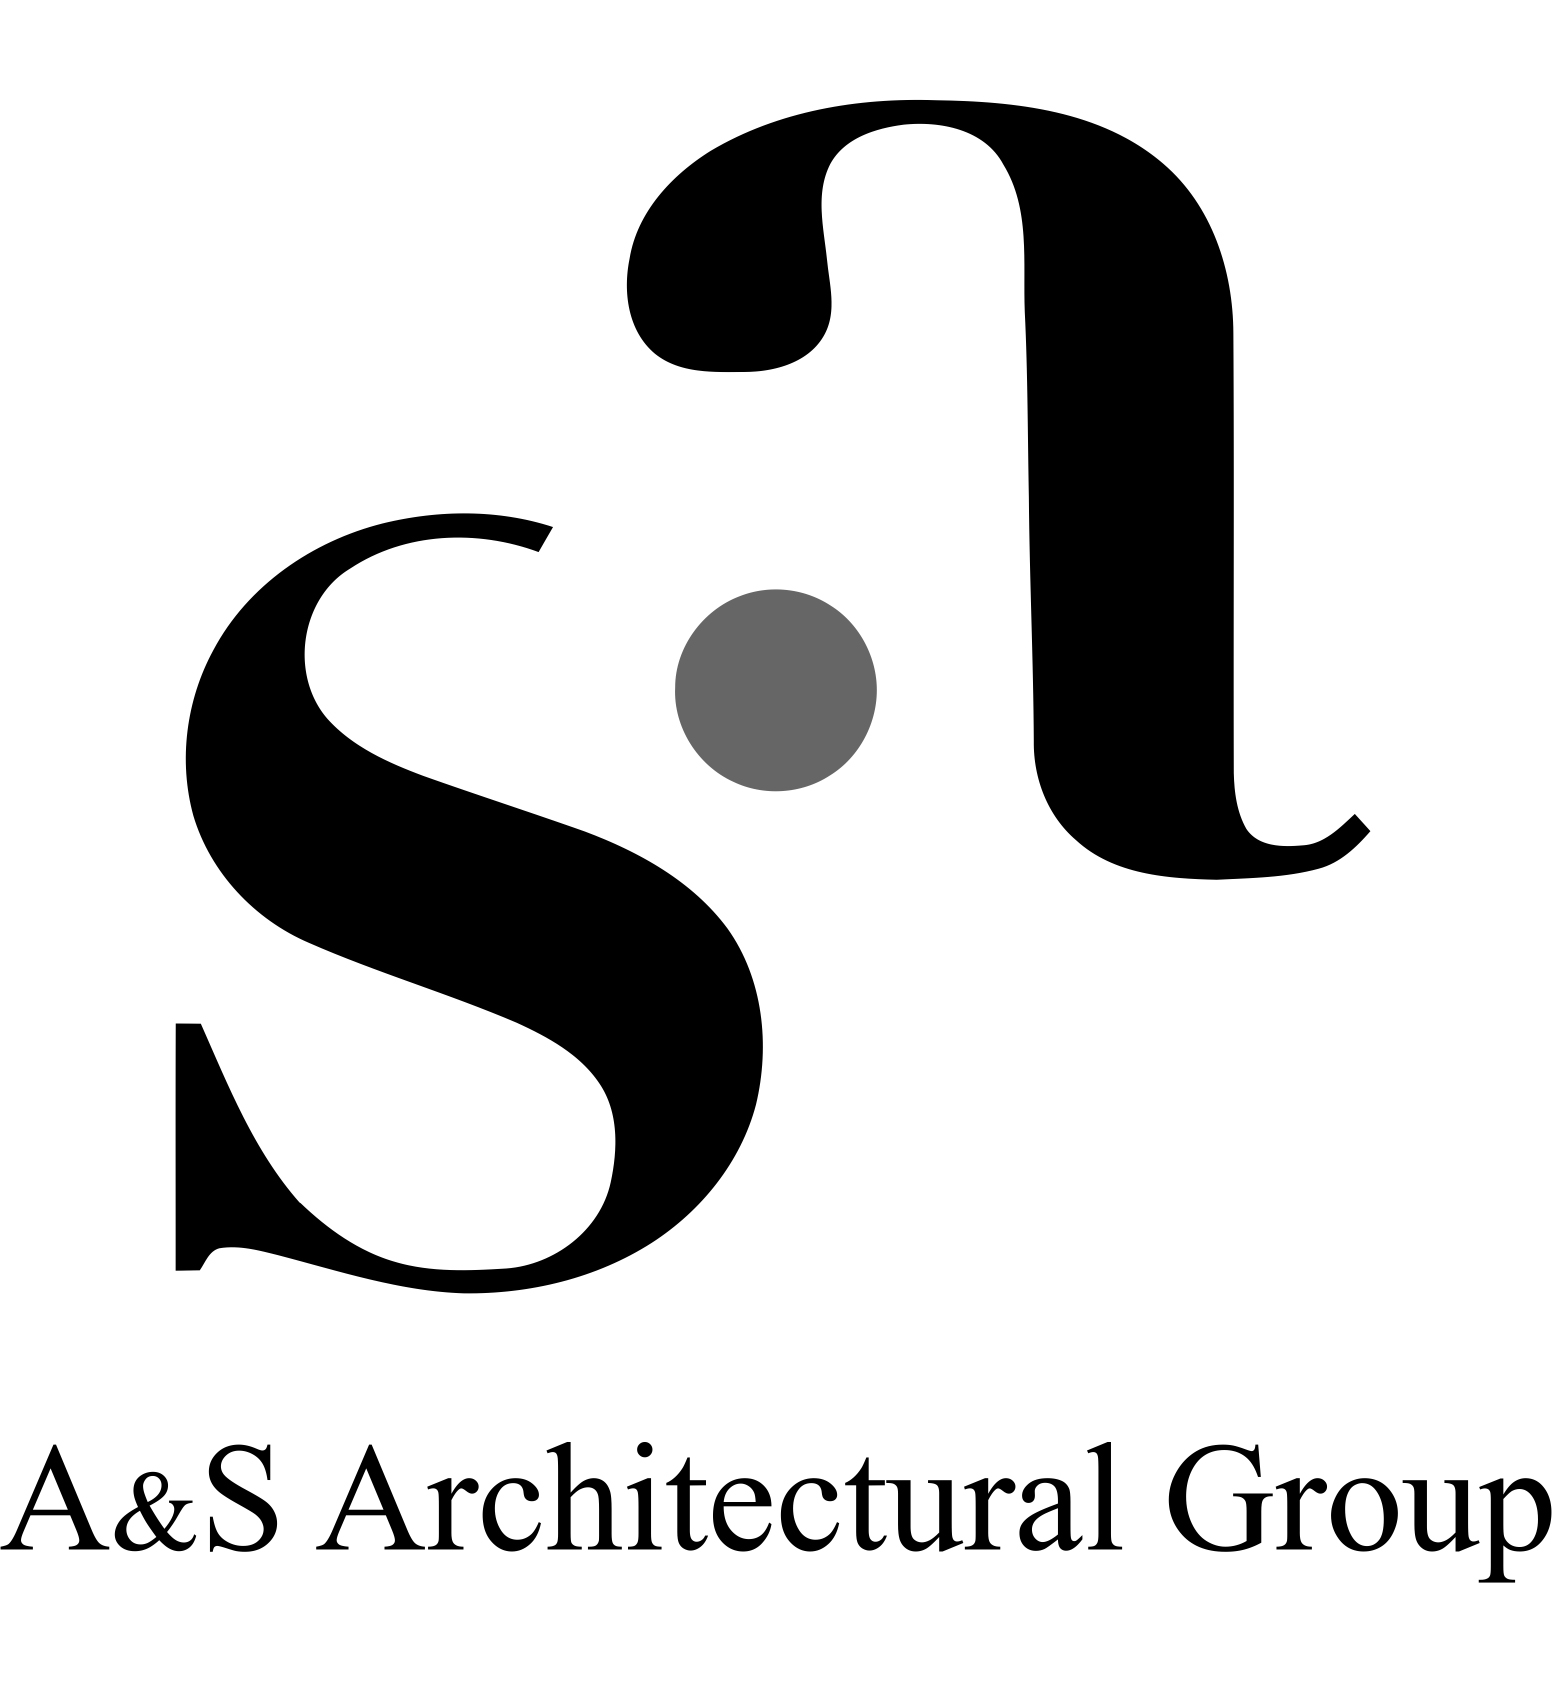 as architectural group